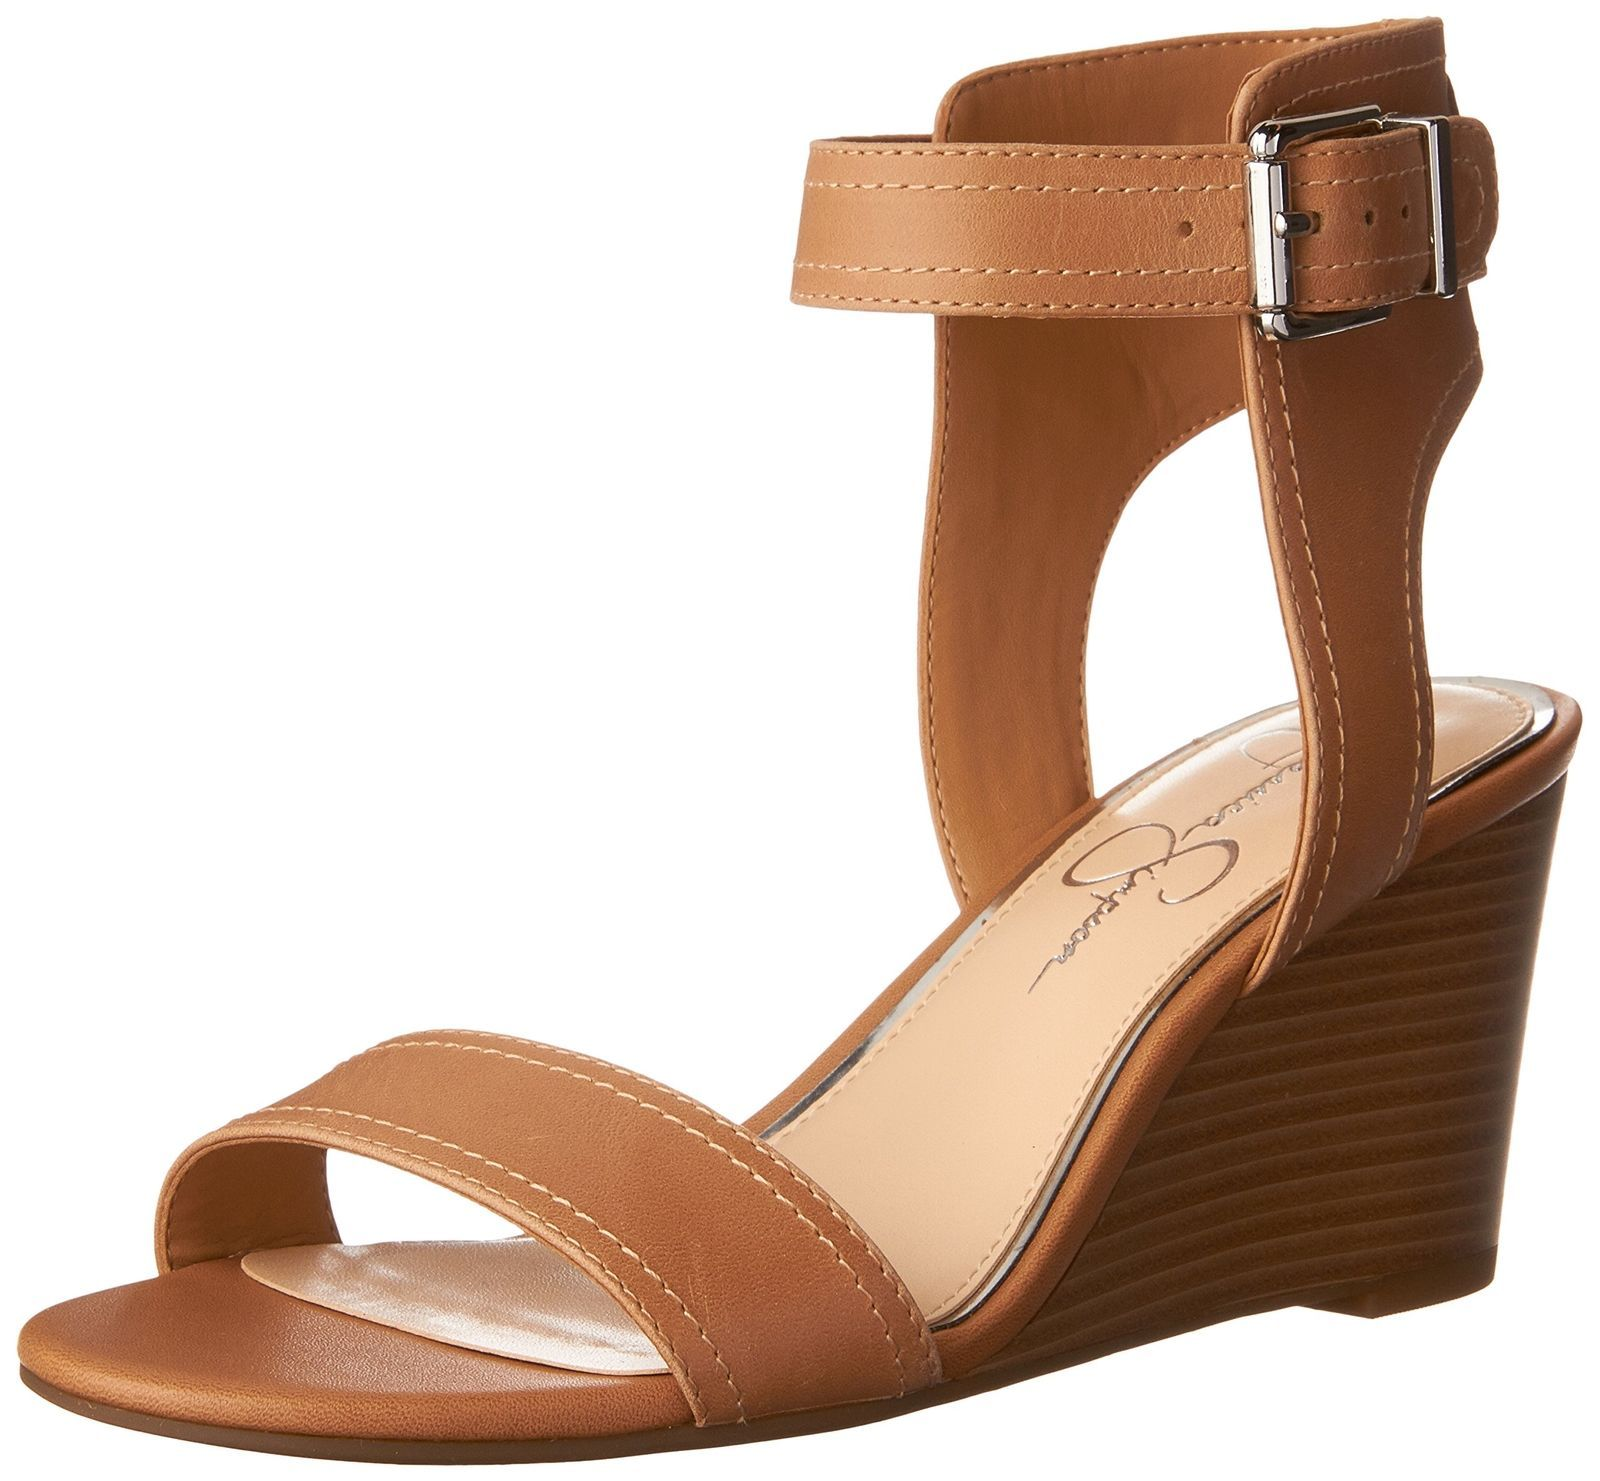 Primary image for Jessica Simpson Women's Cristabel Wedge Sandal Buff 10 B(M) US